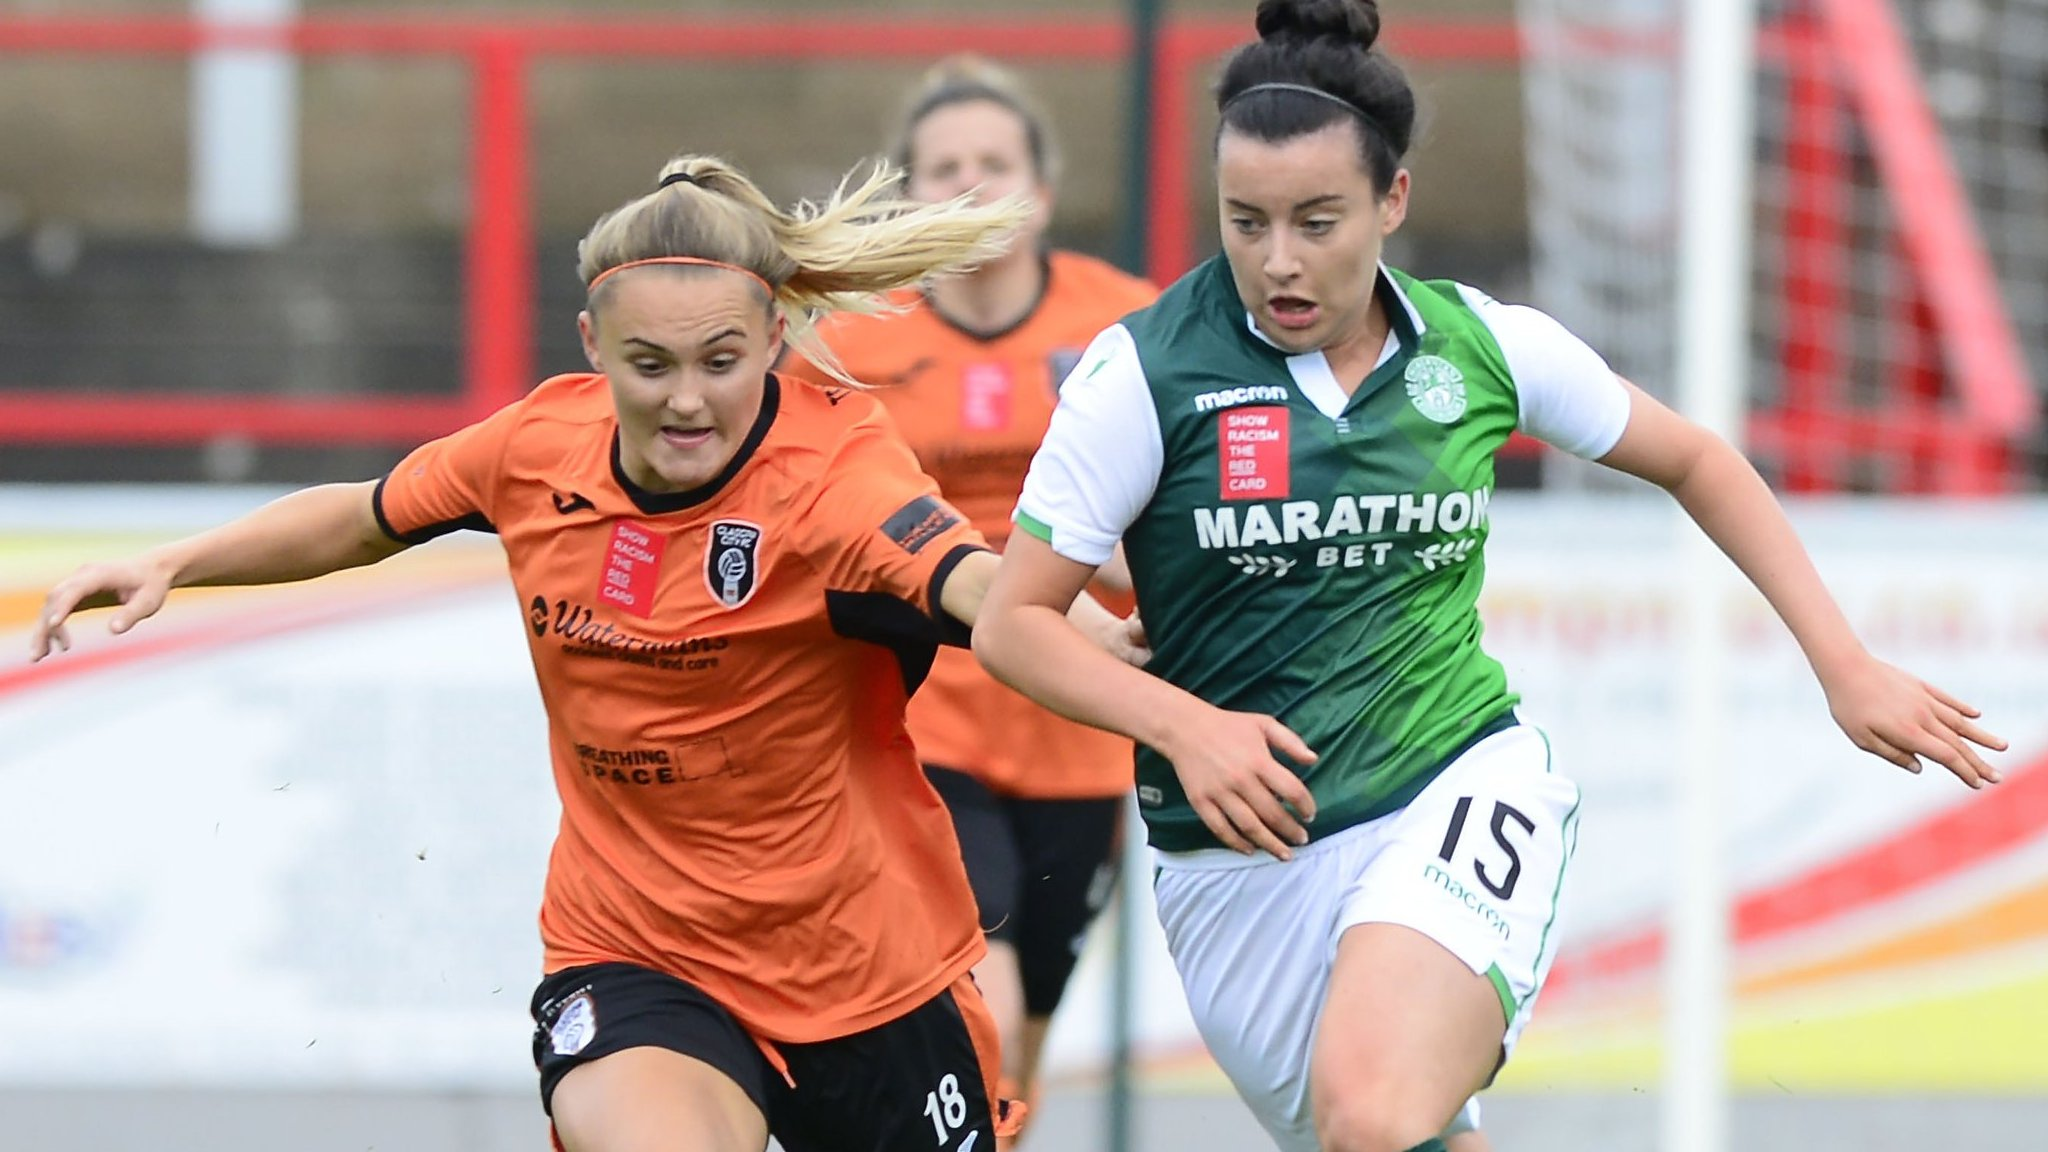 Glasgow City ready for title decider against Hibs - Booth